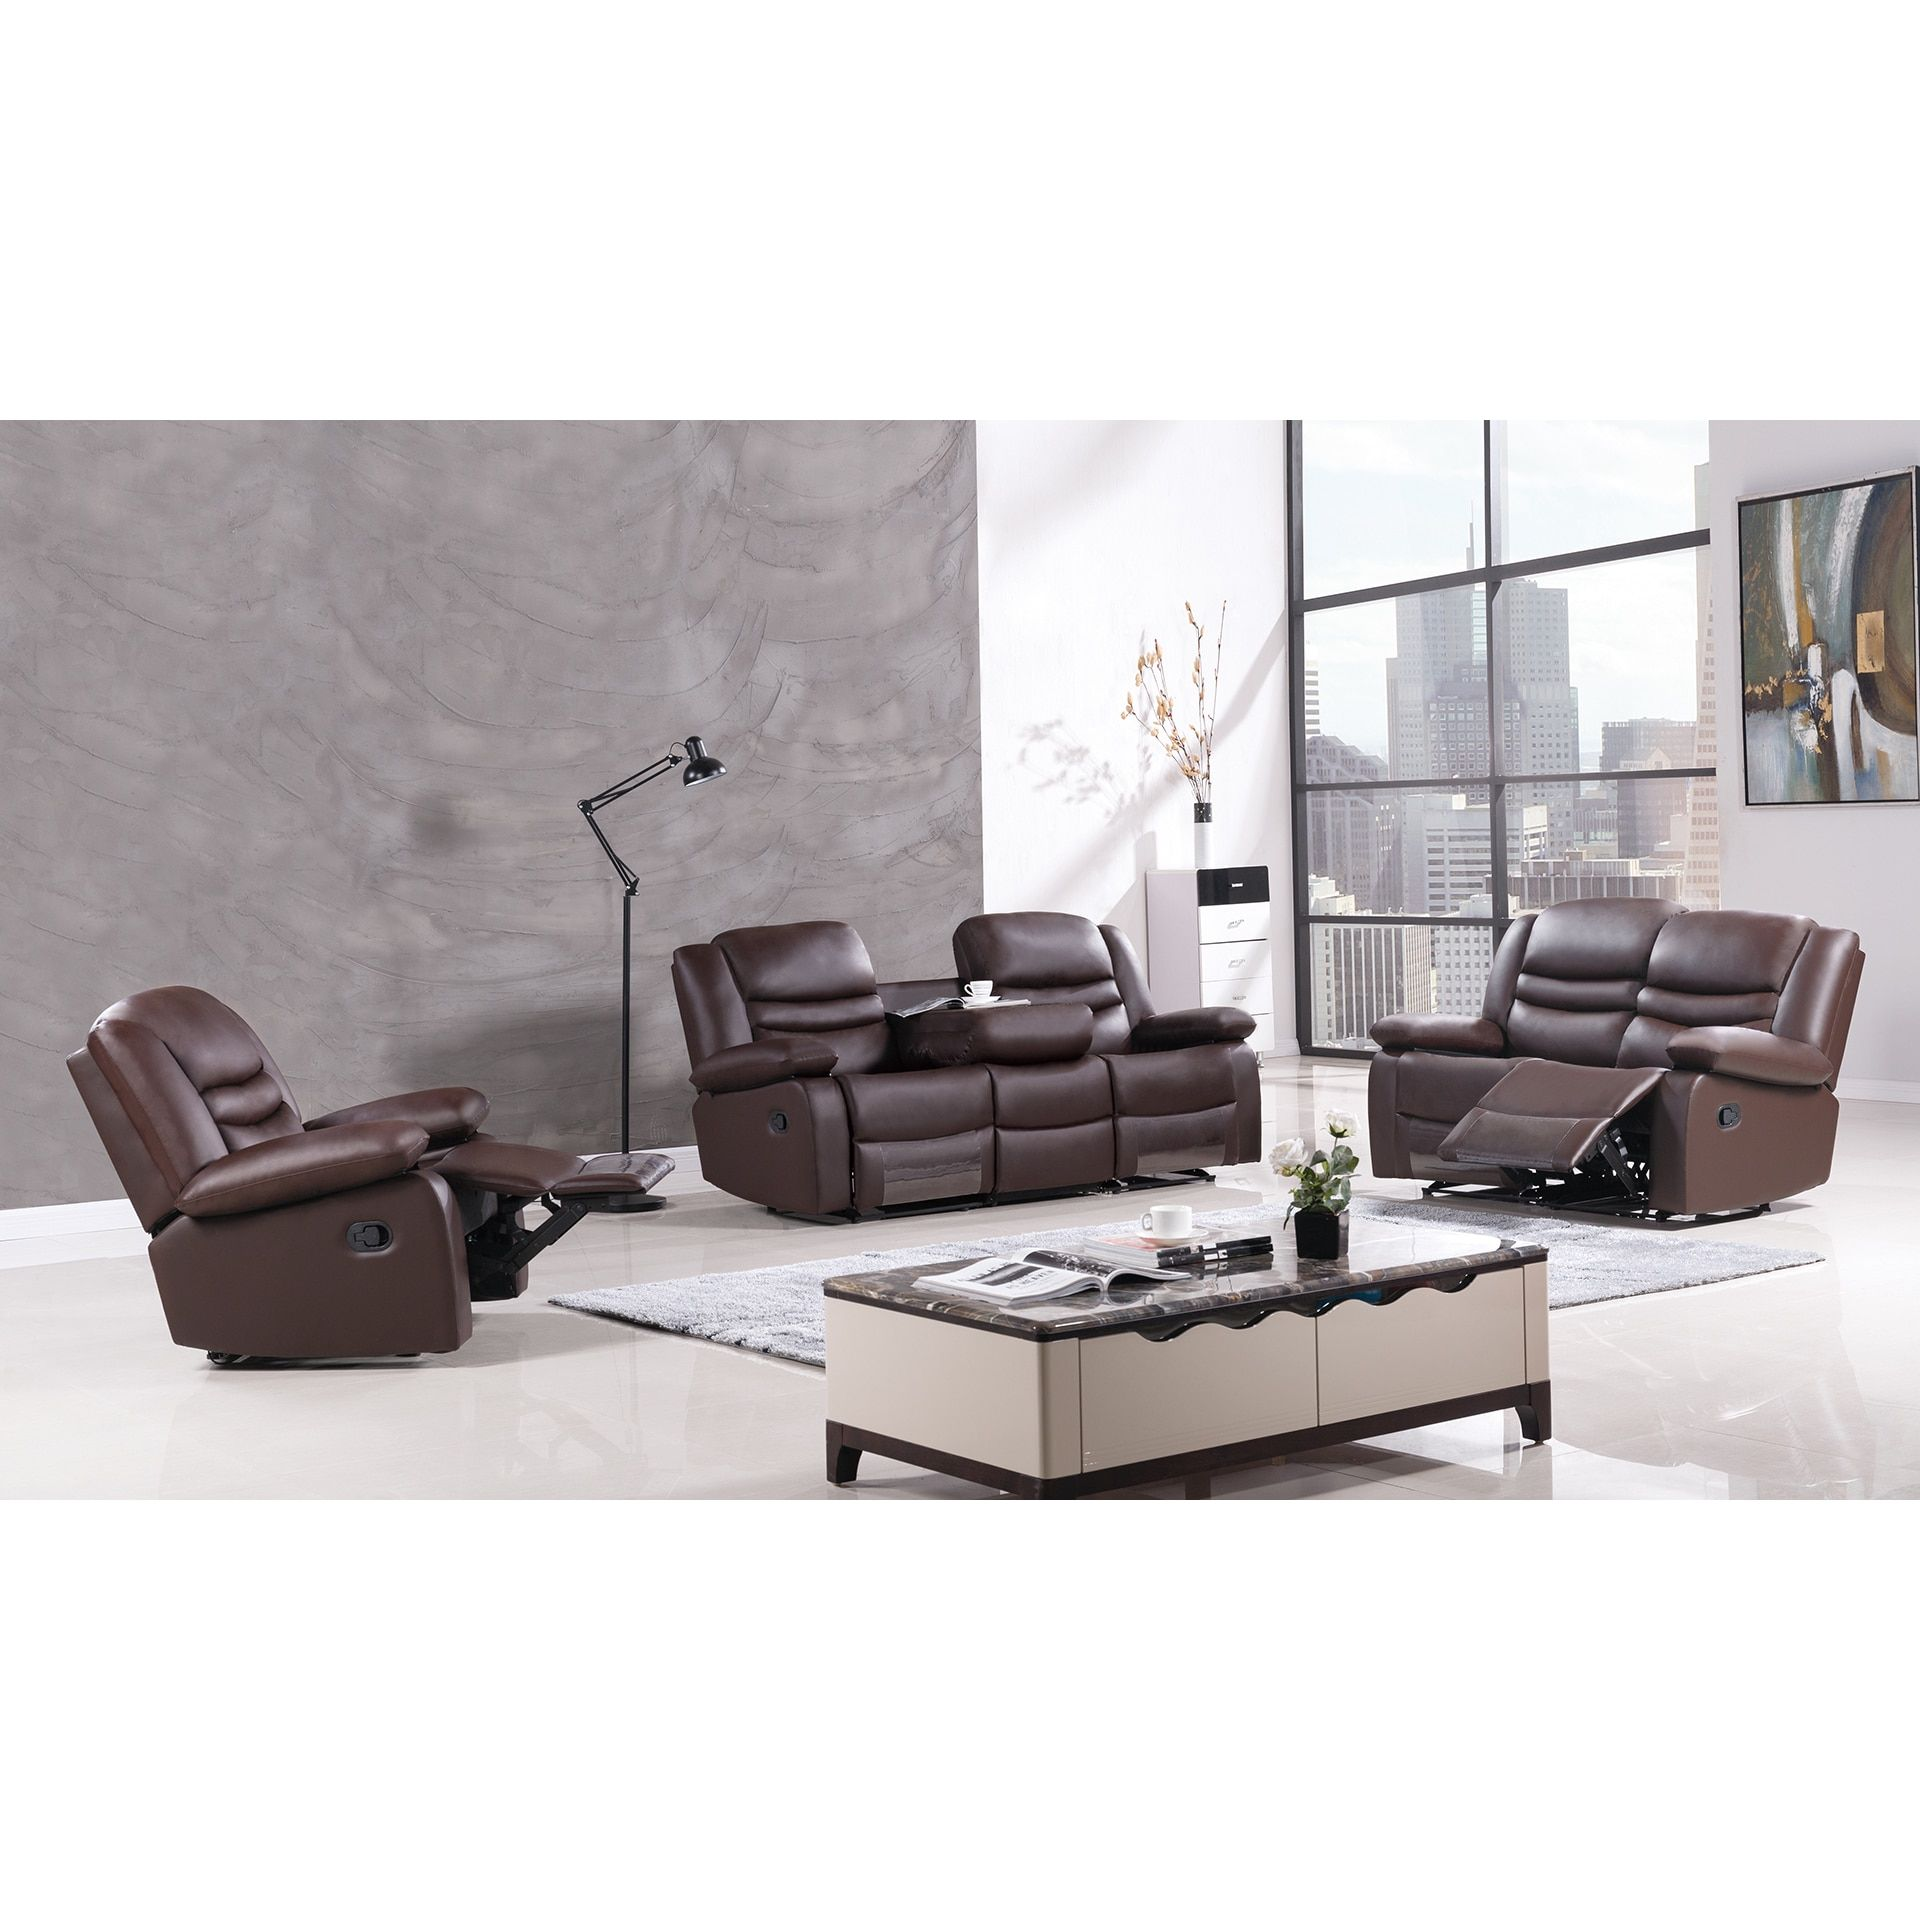 American Eagle Dark Faux Leather Recliner Sofa Set Products